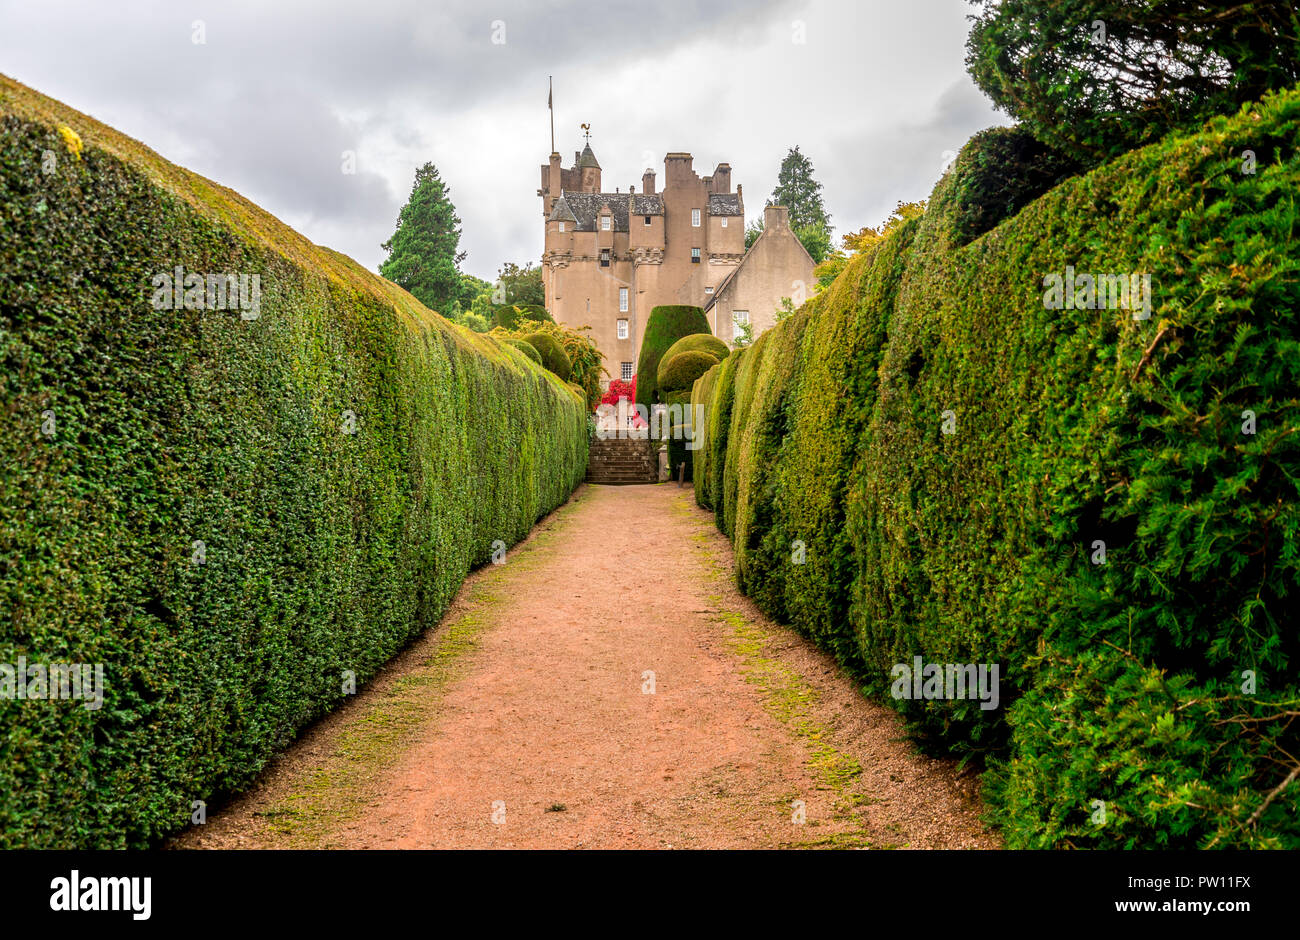 A walkpath thru the gardens to Crathes Castle with green hedges on both sides, Aberdeenshire, Scotland Stock Photo